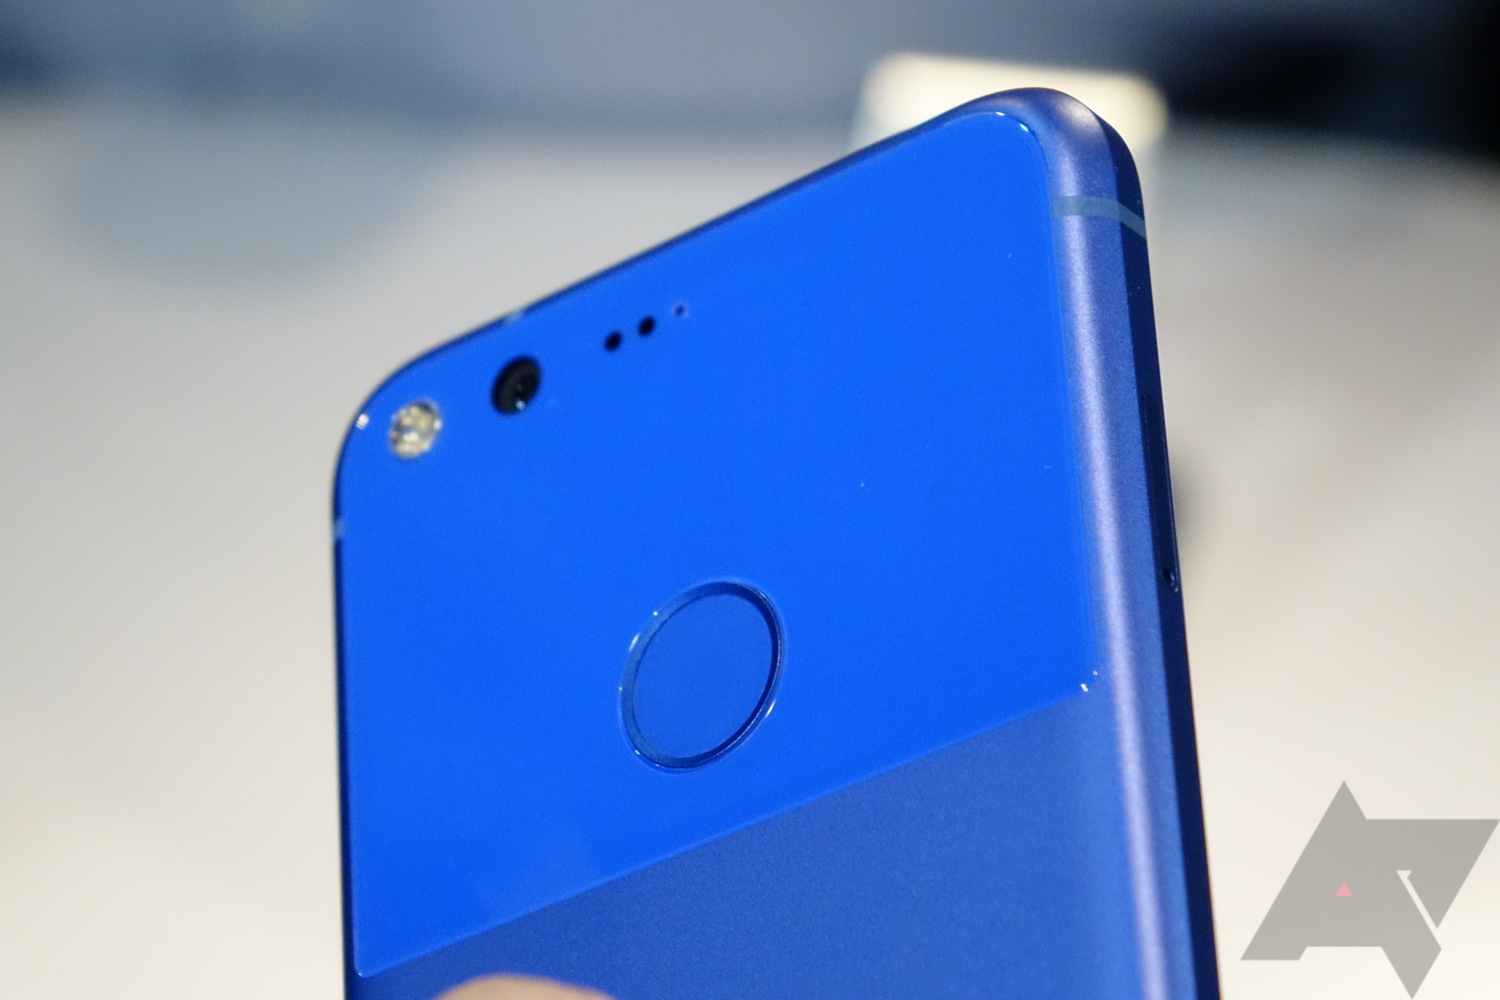 Google says Pixel pre-orders are exceeding expectations and causing delays